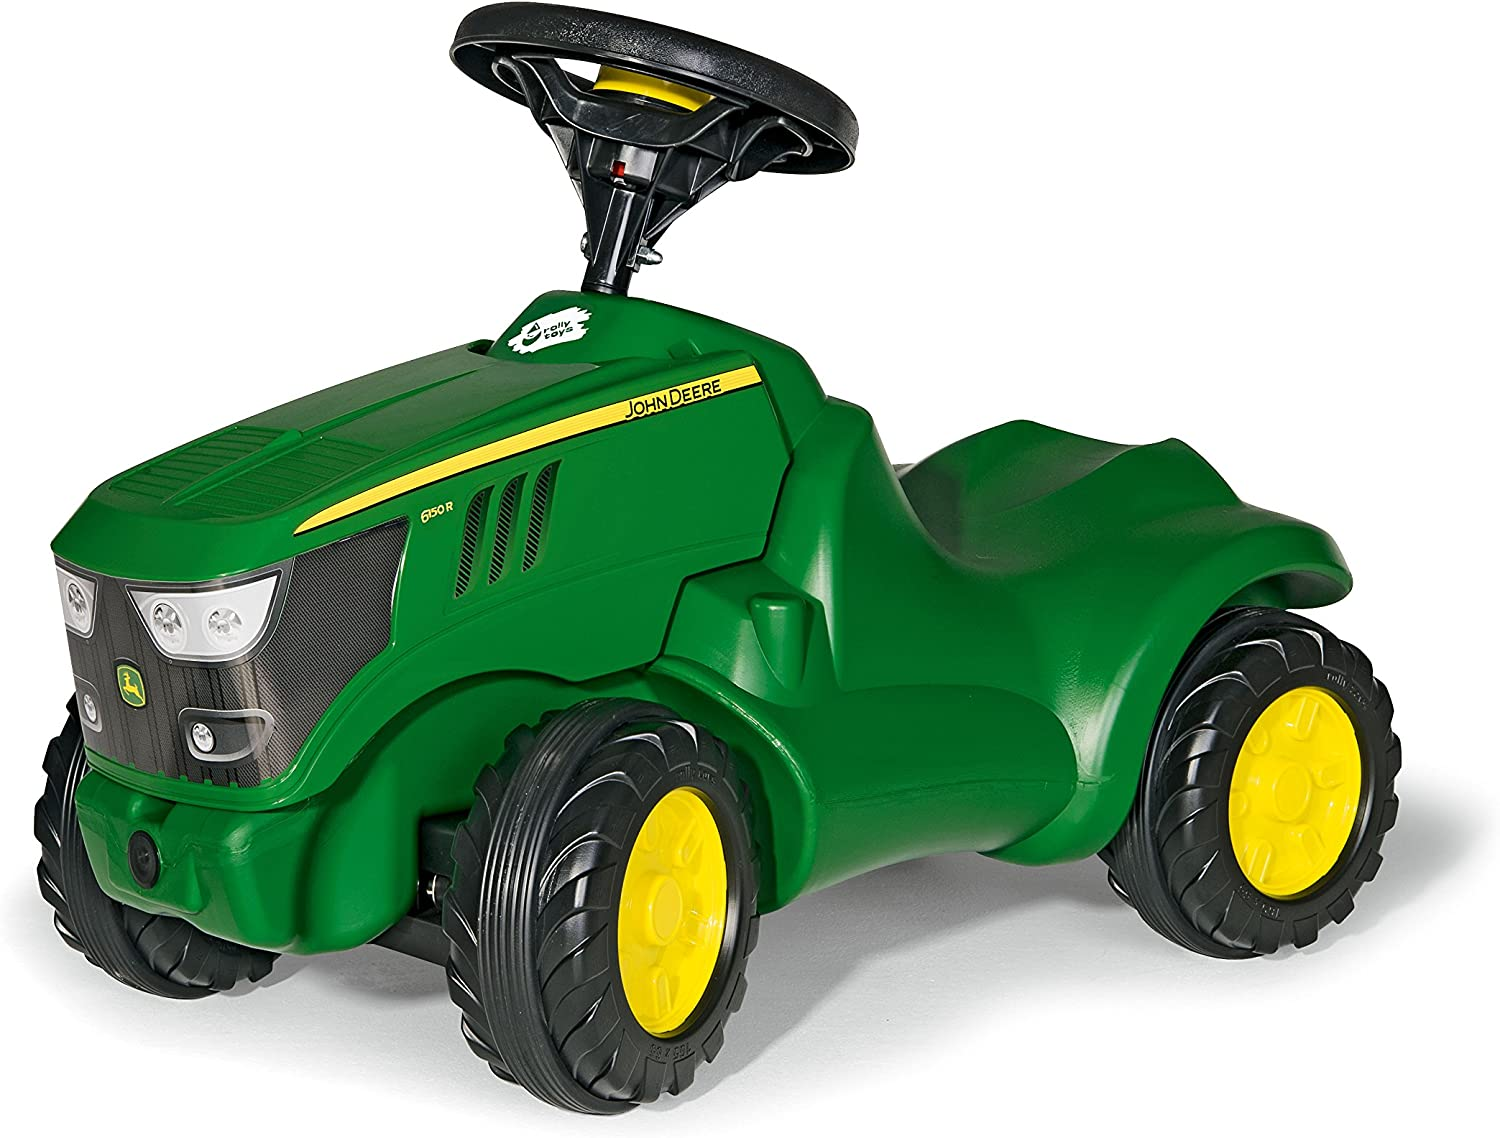 B006T0BP7M ROLLY TOYS John Deere Minitrac Foot to Floor 81b7TQzzAvL.SL1500_